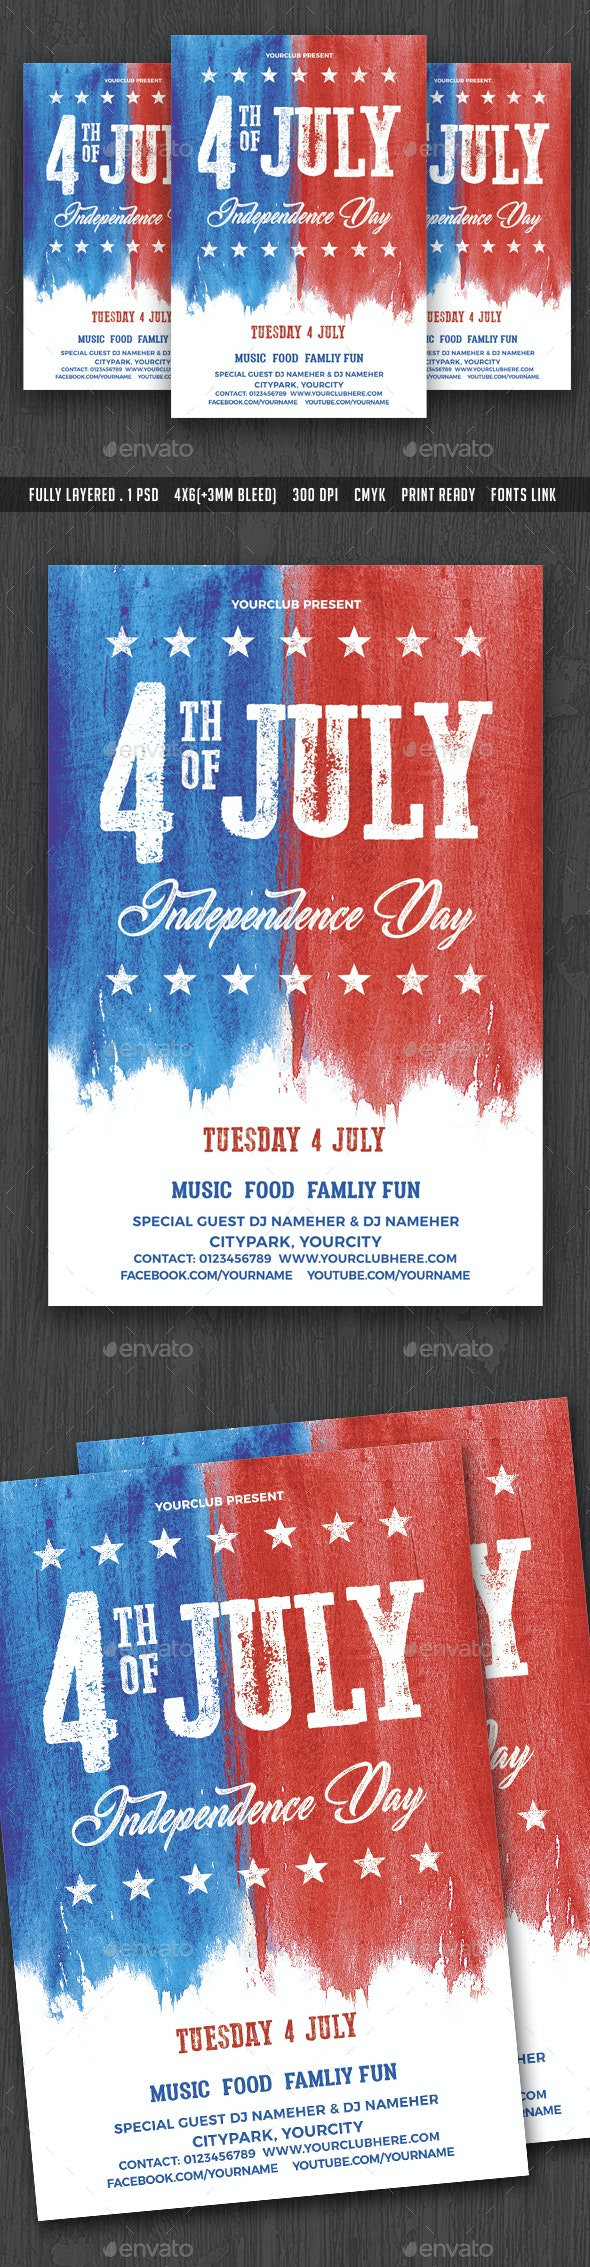 4th of July Flyer Template - Holidays Events